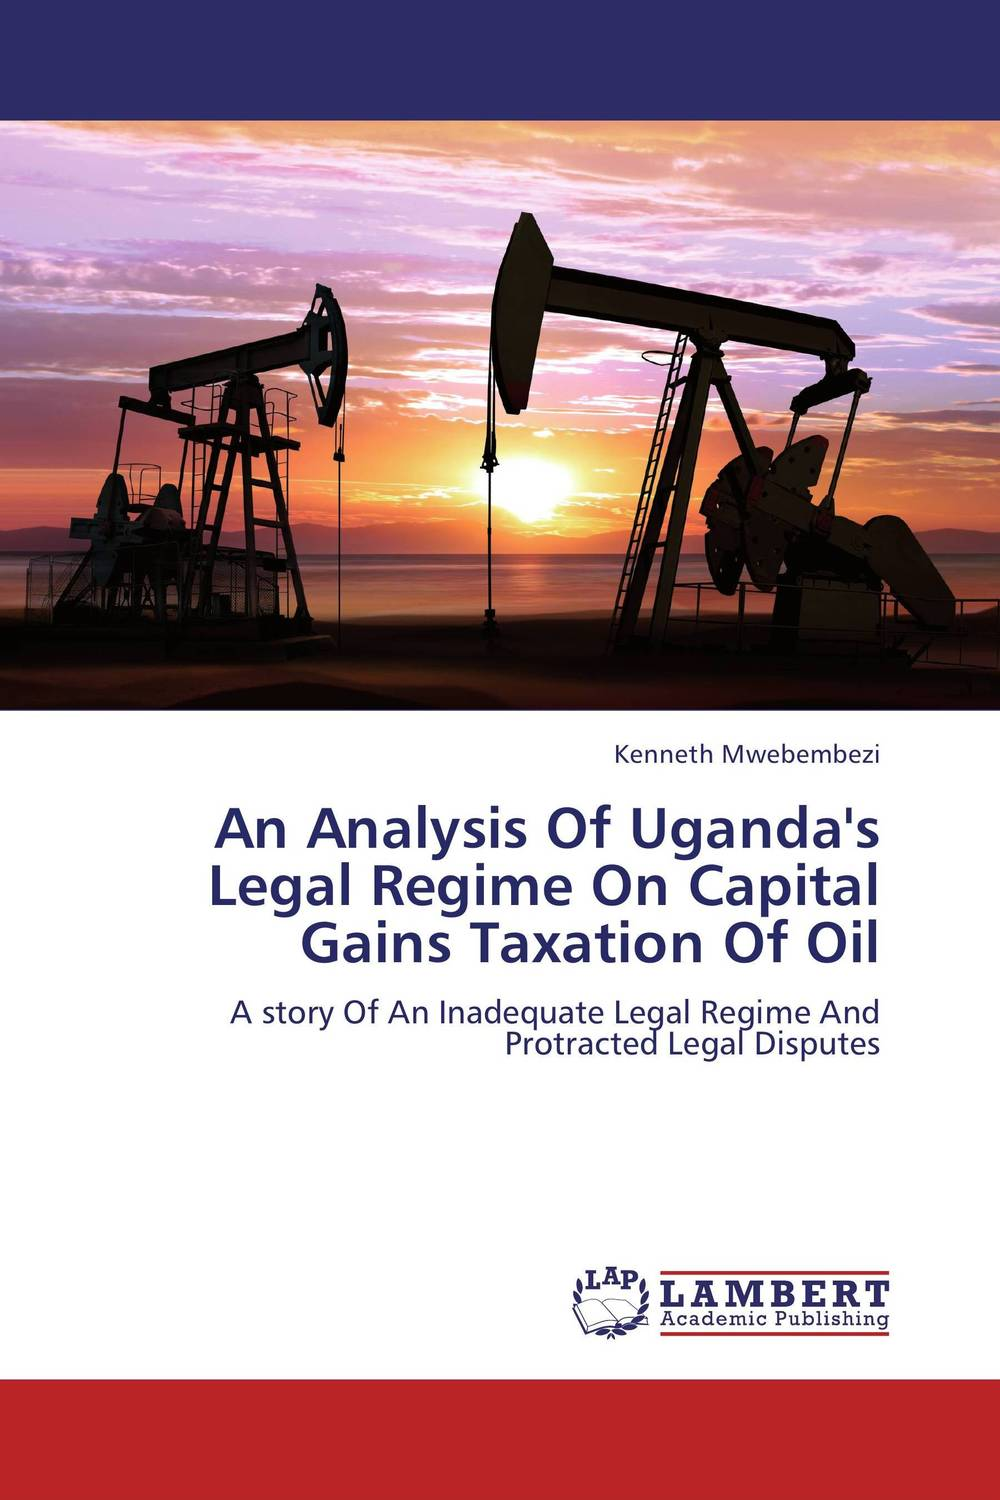 An Analysis Of Uganda's Legal Regime On Capital Gains Taxation Of Oil